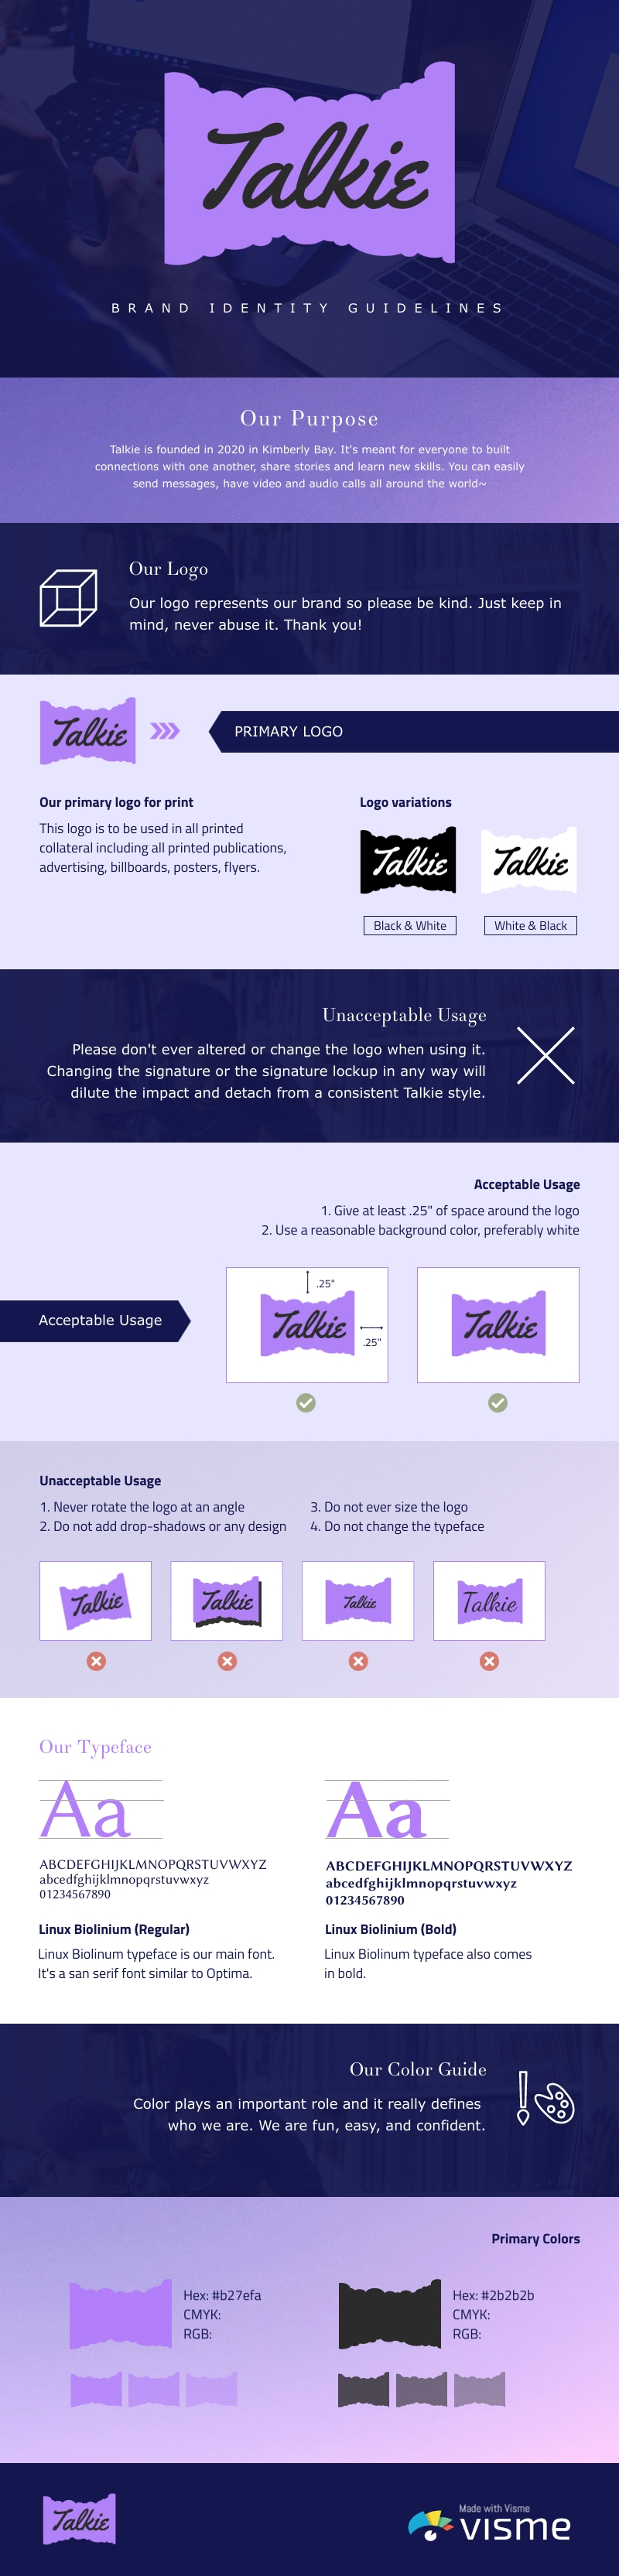 Web App Brand Guidelines - Infographic Template